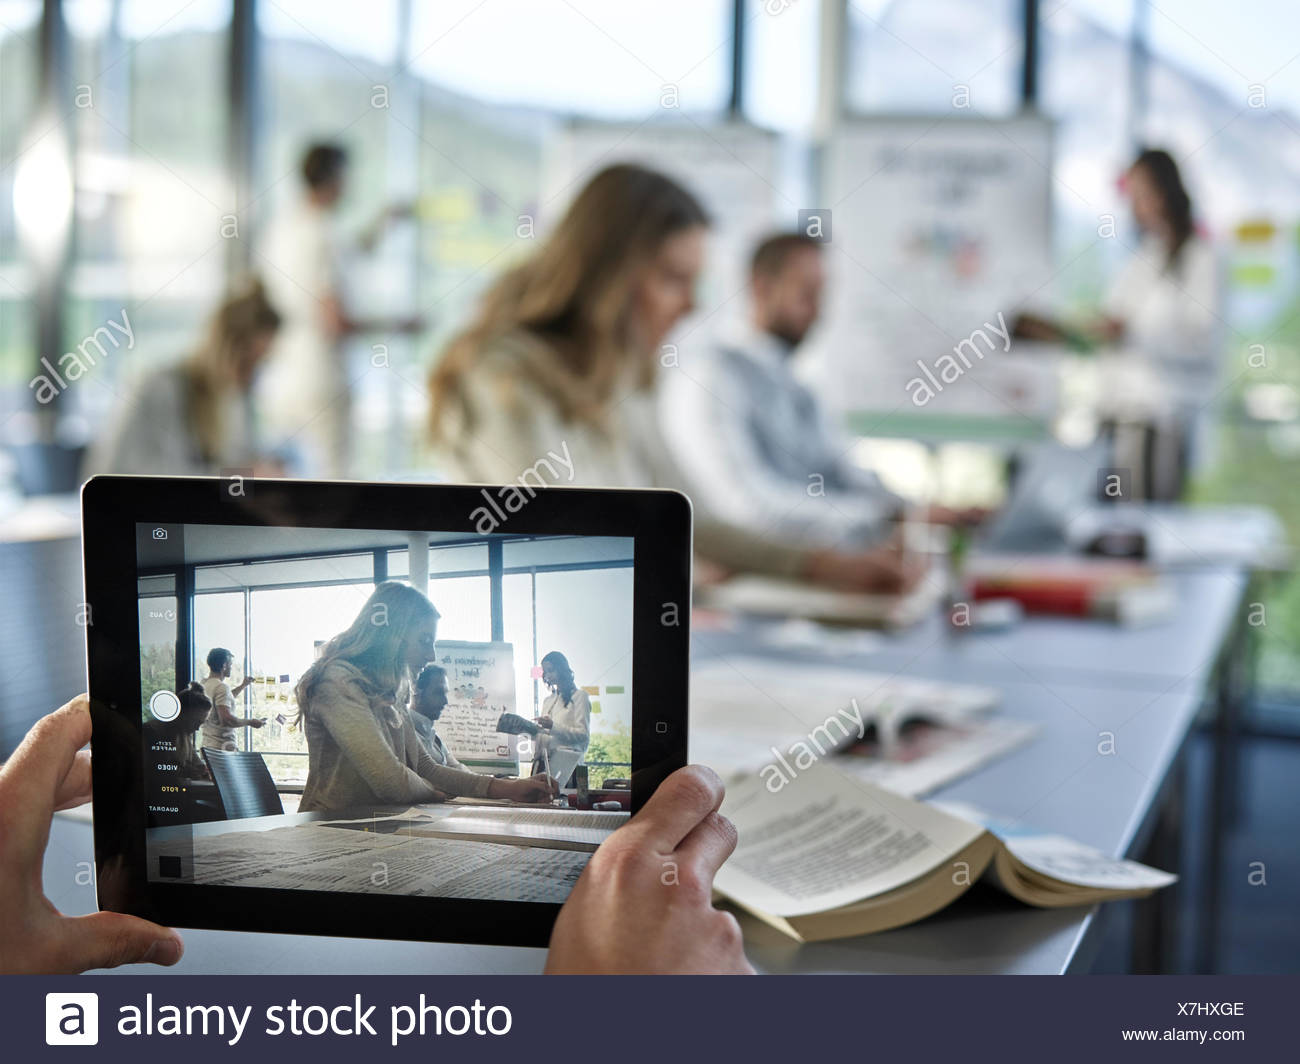 Photo with an iPad, Creative teamwork, presentation, brainstorming, project work, workshop, training, seminar for executives - Stock Image